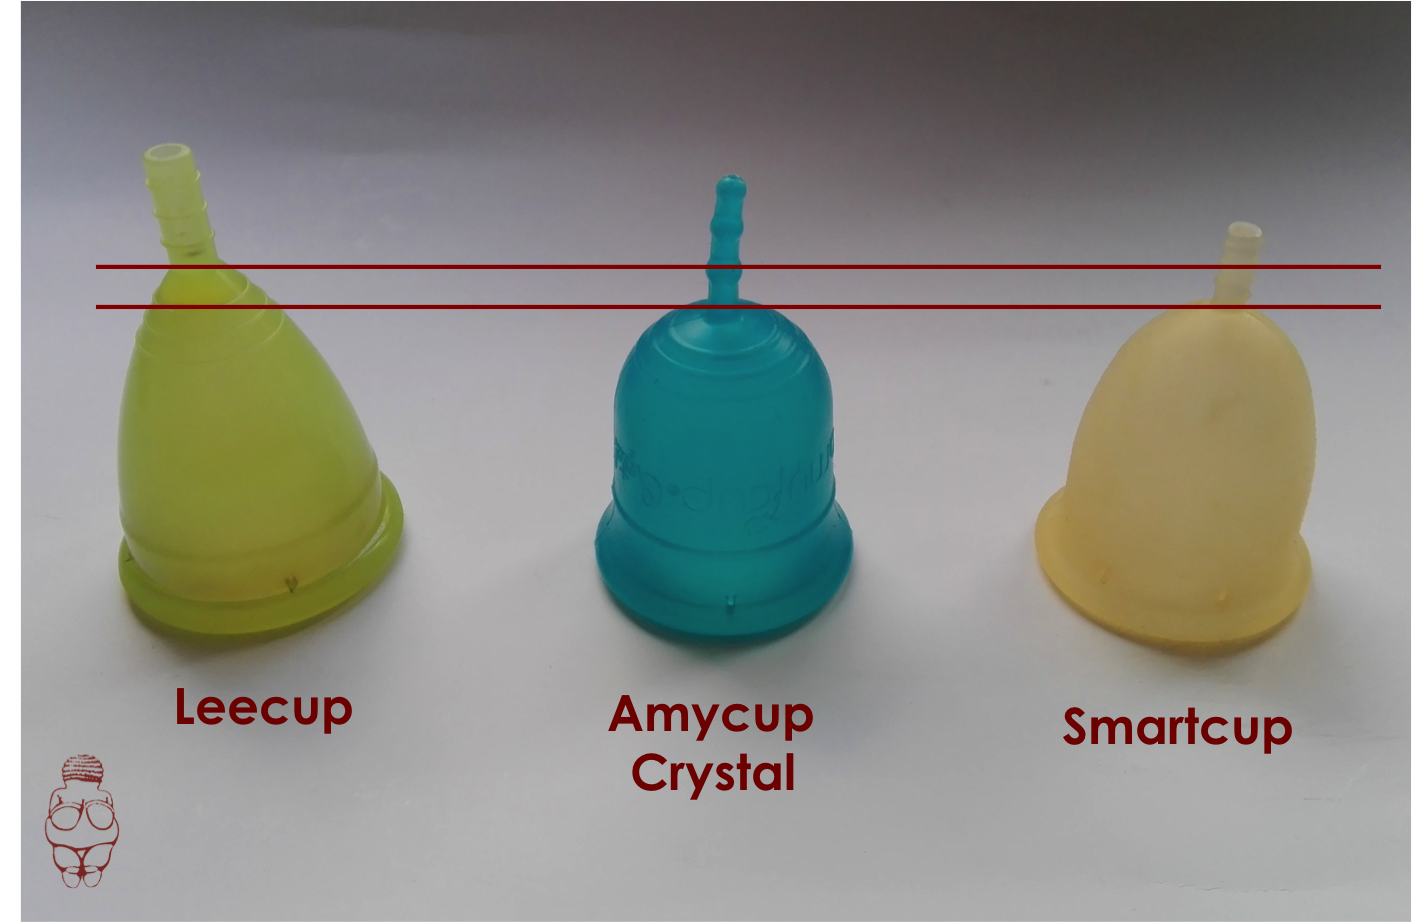 amycup-cristal-2